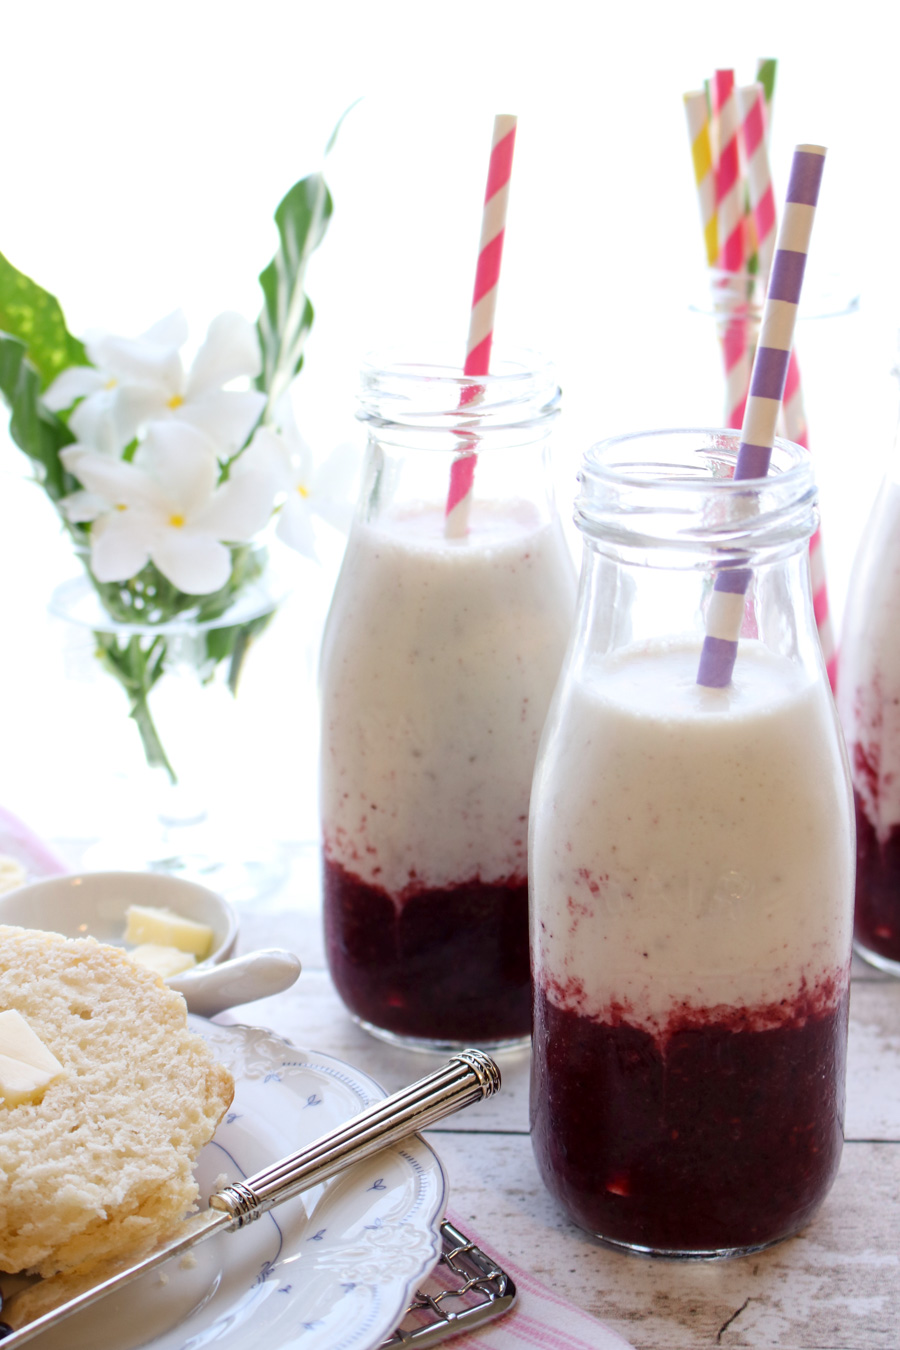 BANANA BERRY YOGURT SMOOTHIE WITH BISCUITS AND BUTTER AND FLOWERS IN THE BACKGROUND